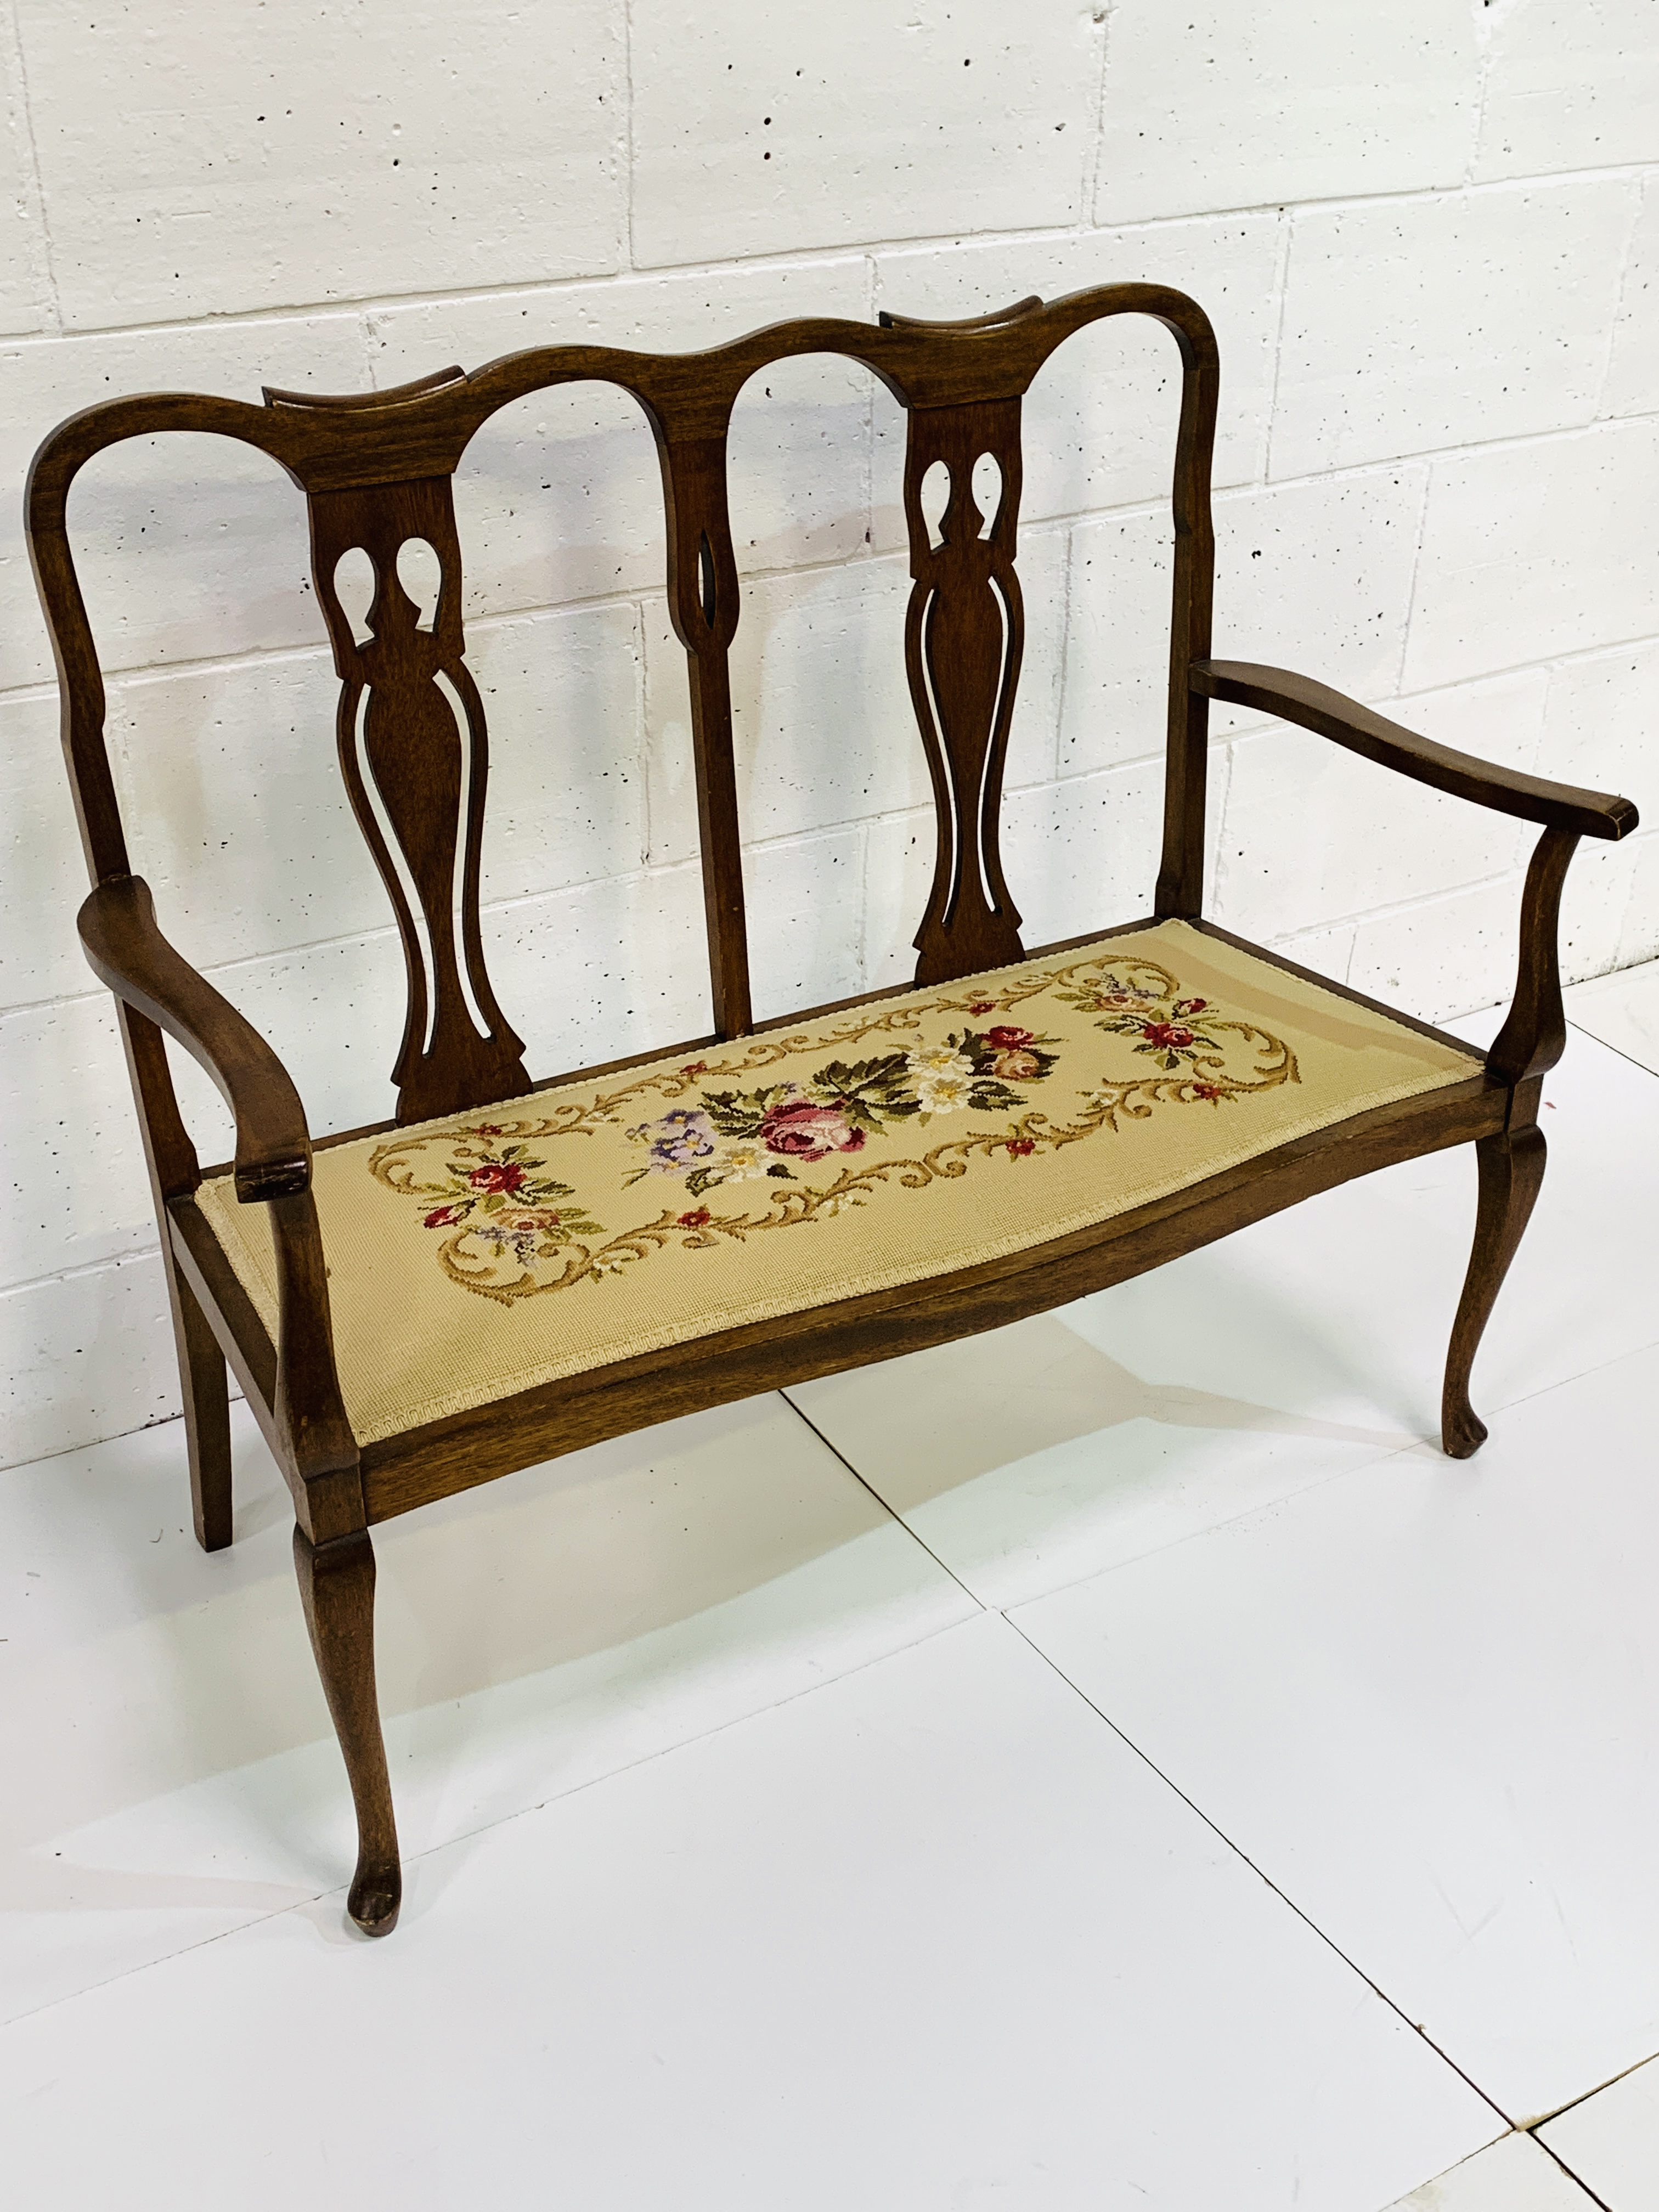 Mahogany framed two seat settle - Image 3 of 3